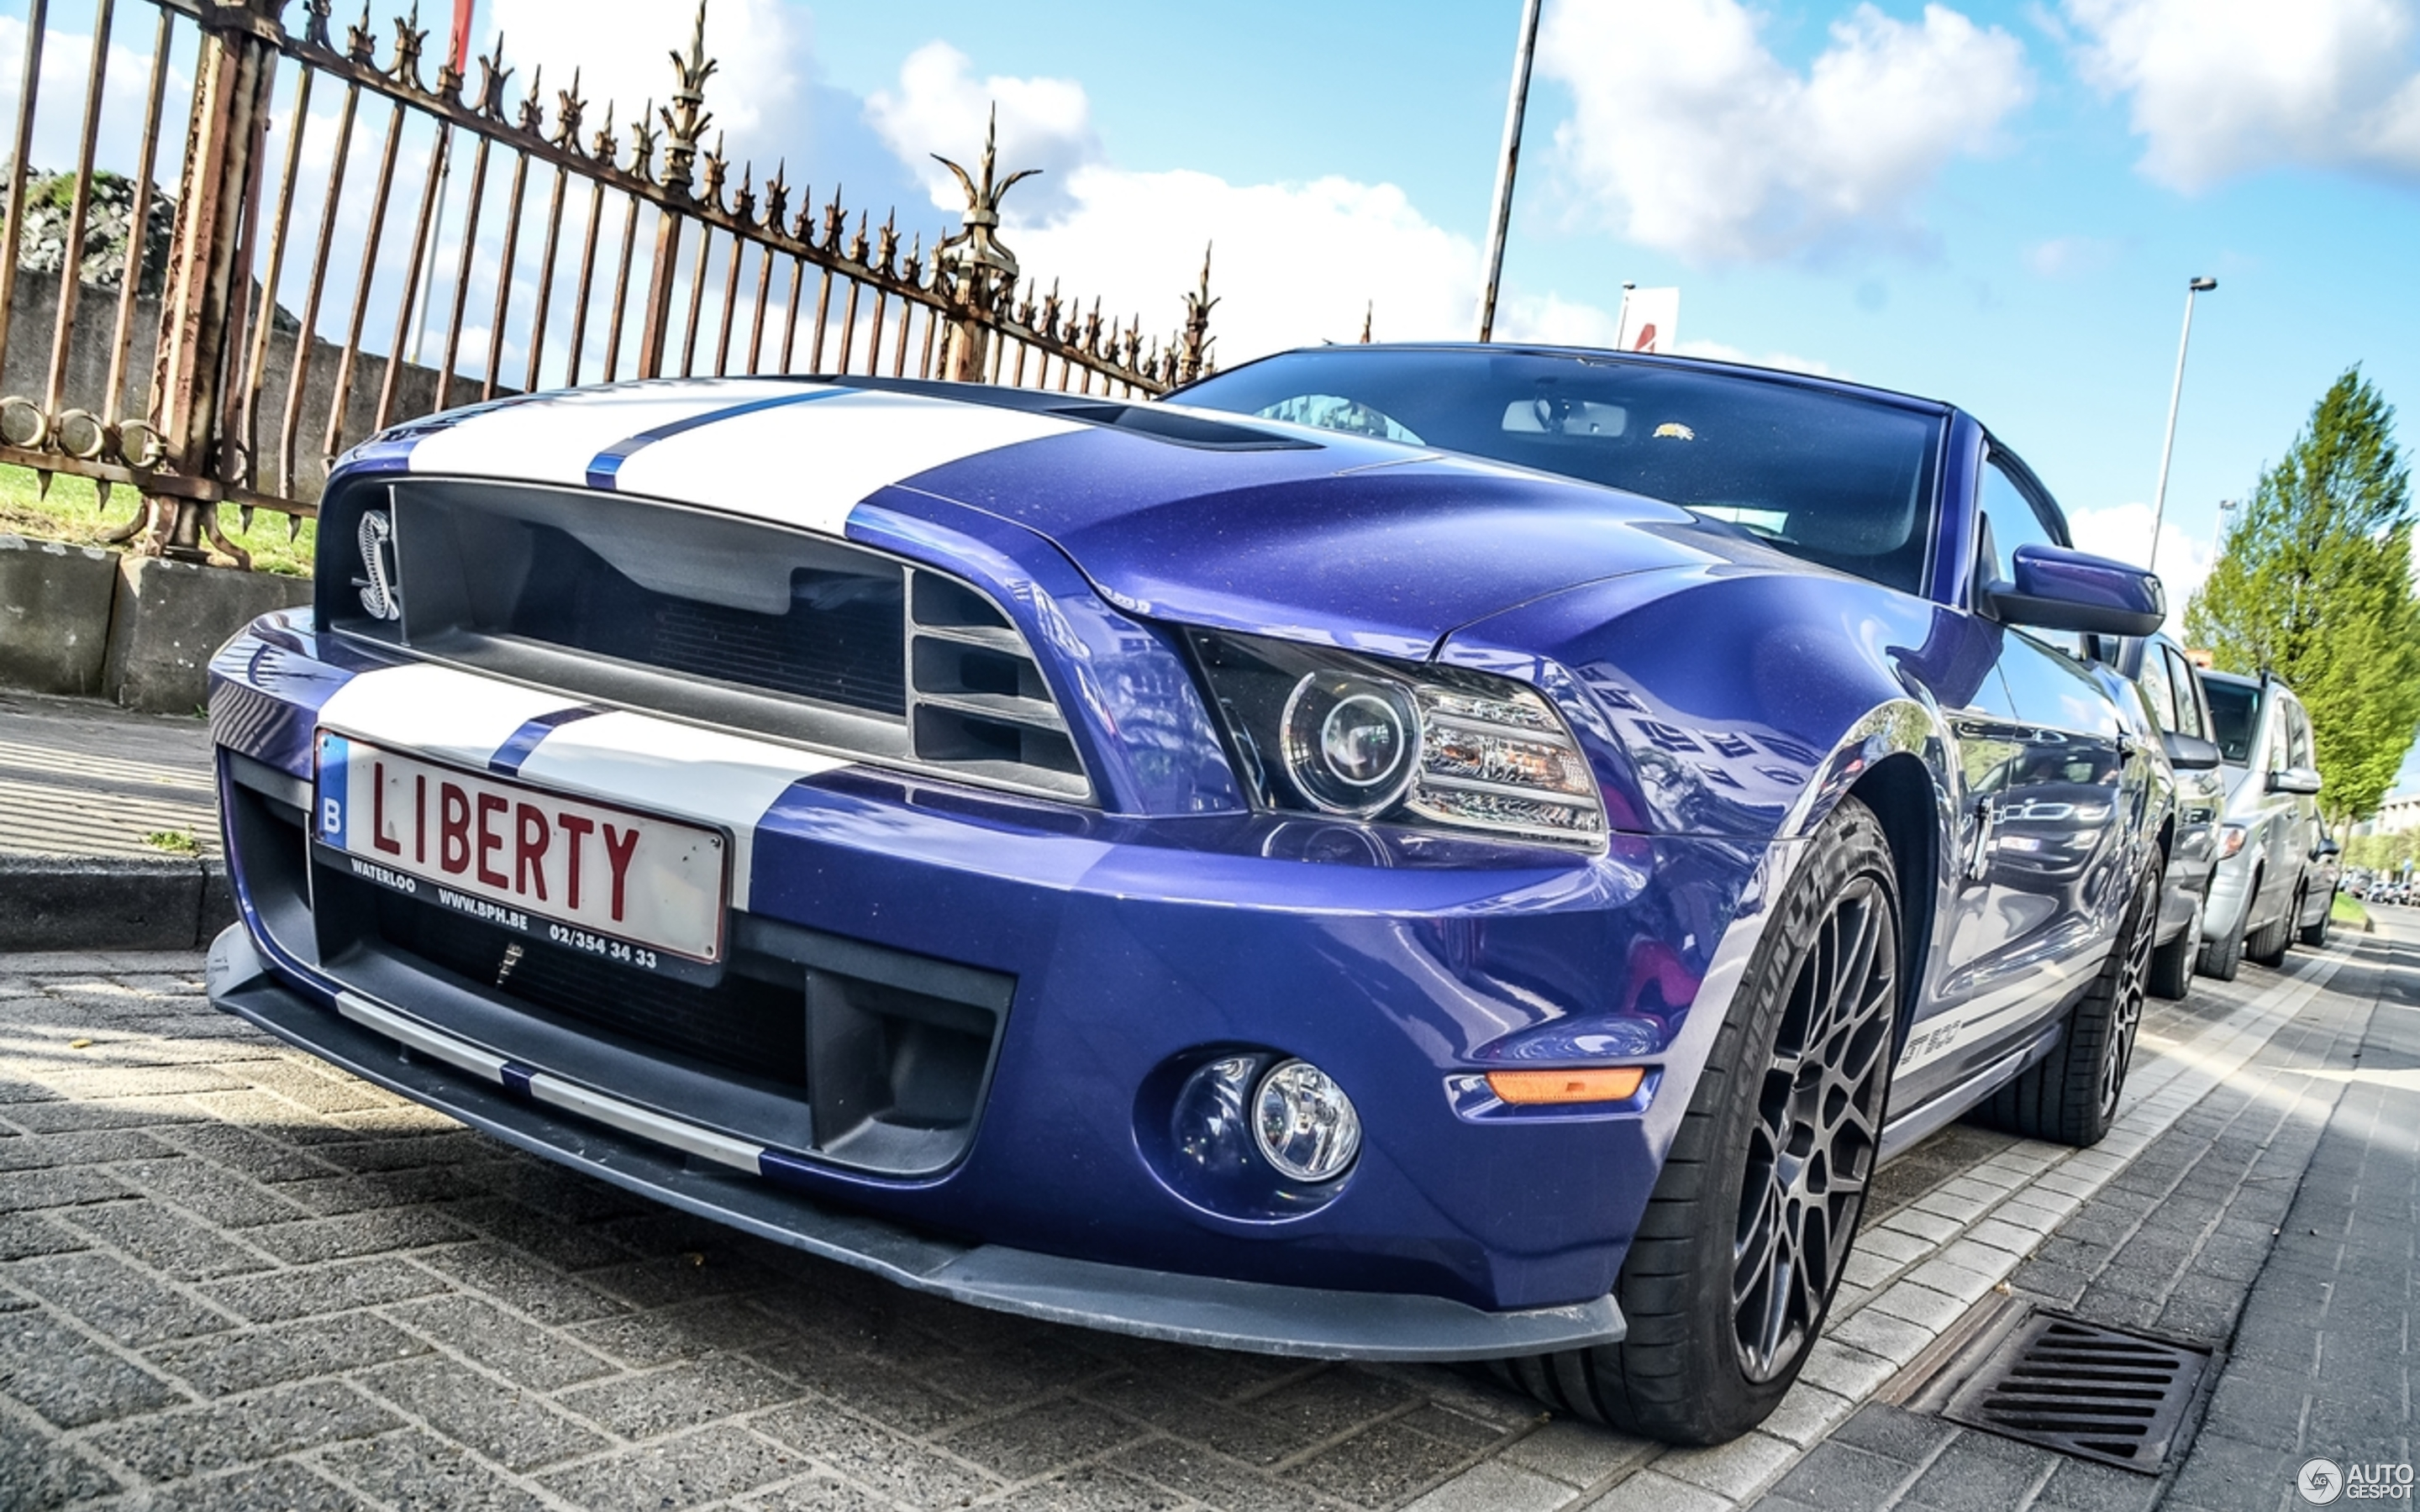 Ford Mustang Shelby GT500 Convertible 2014 24 April 2016 Autogespot